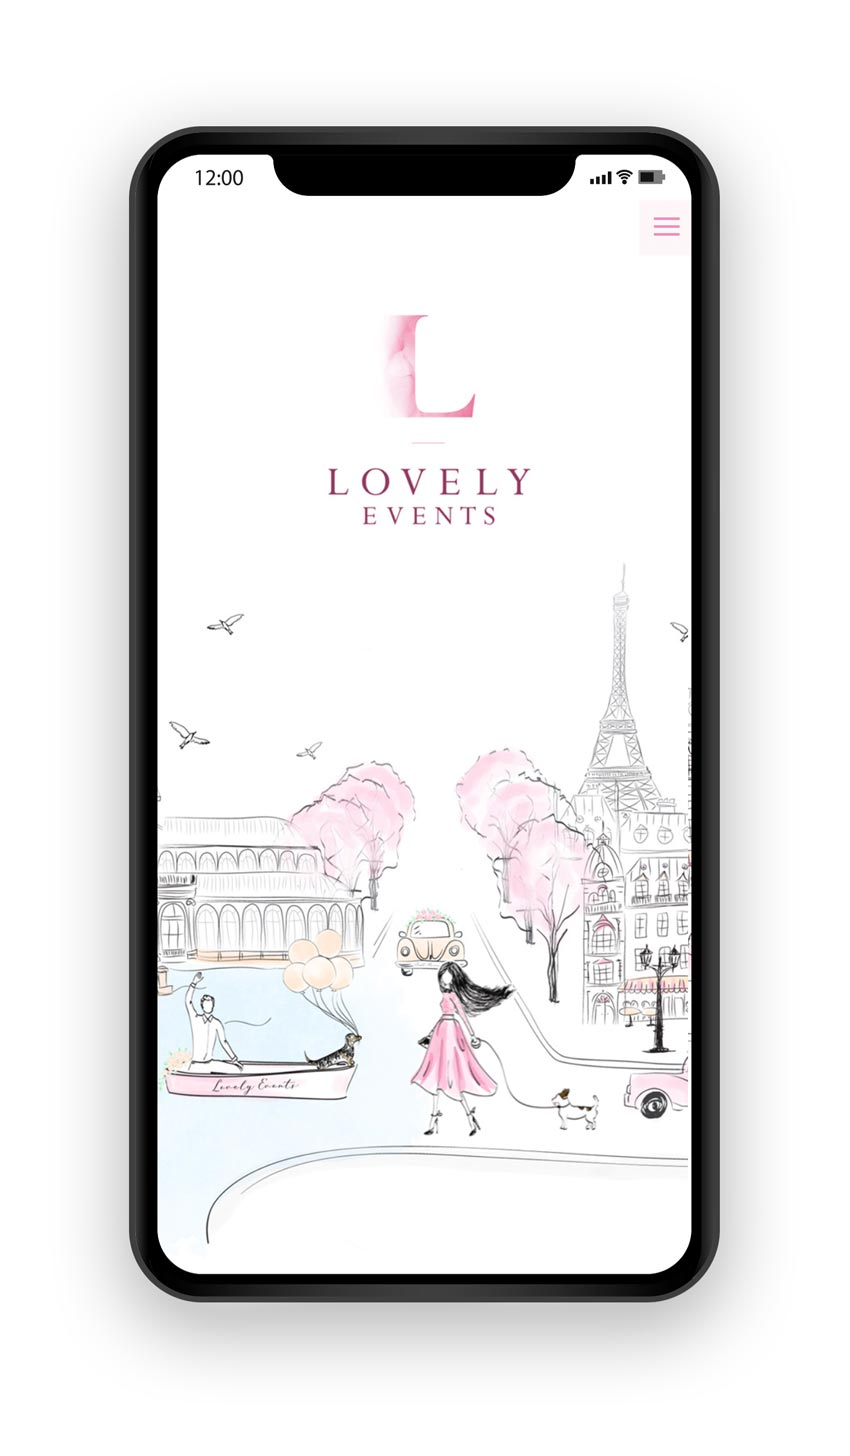 giset design web responsive portada lovely events movil